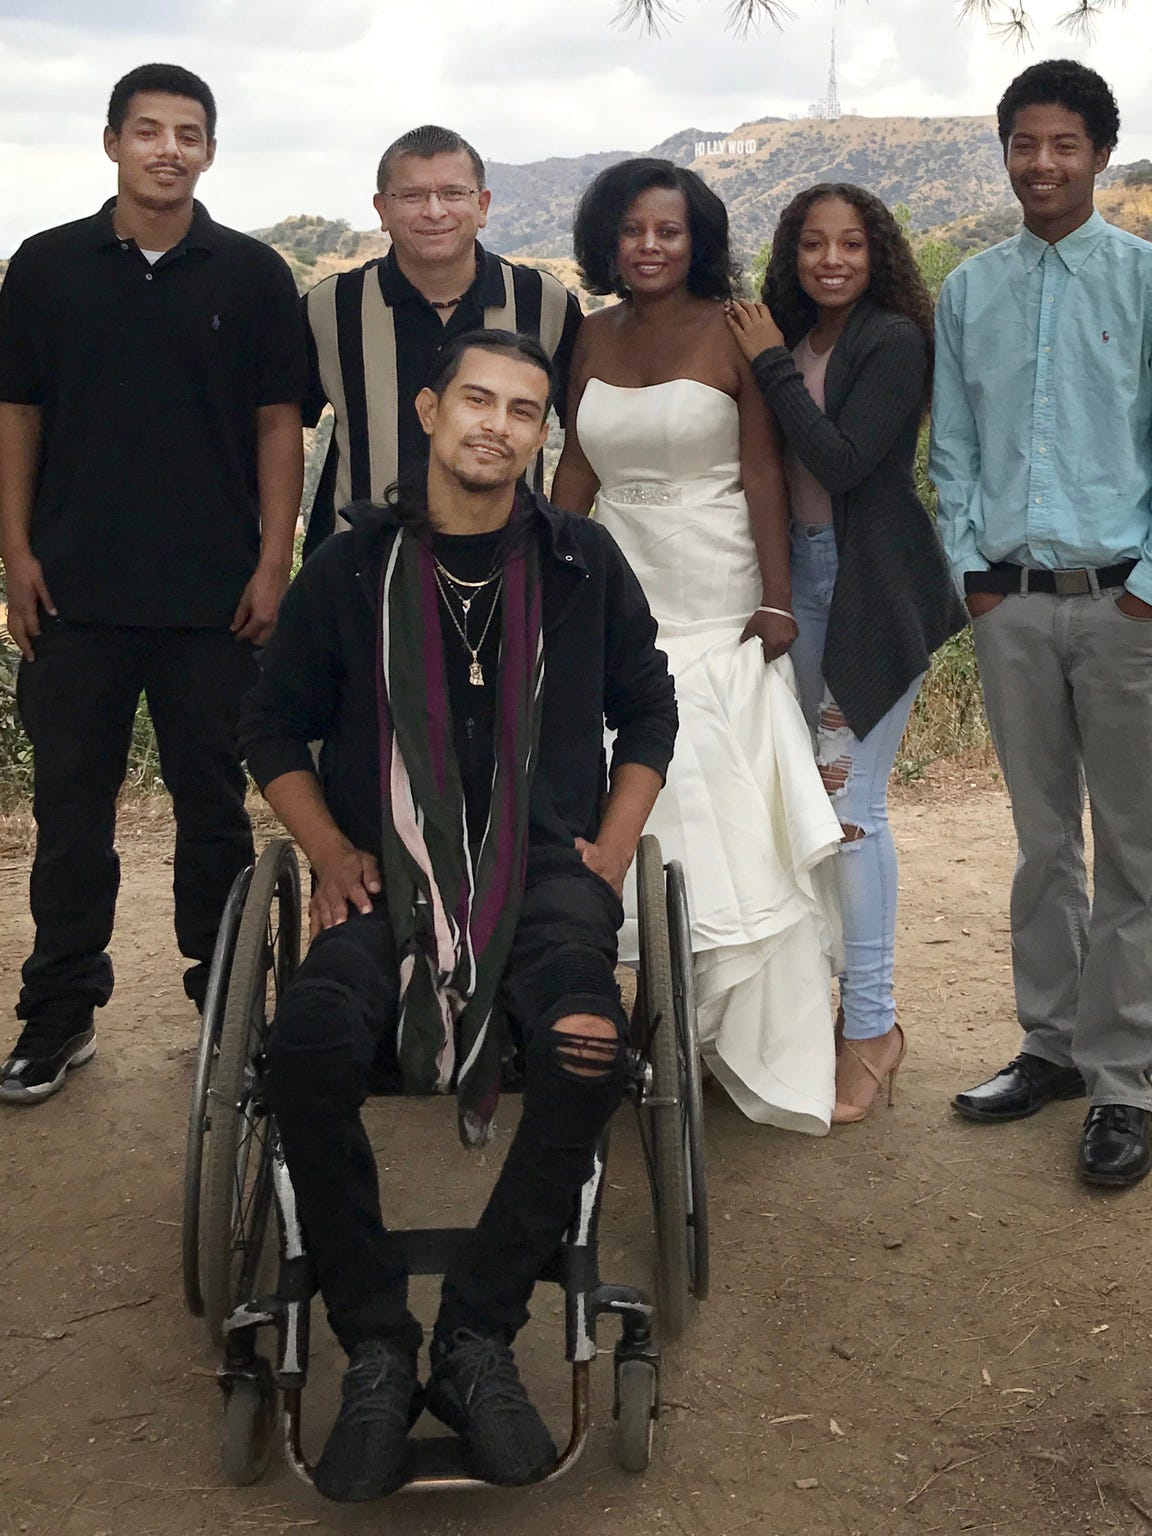 Javier Arango was best man at the 2017 wedding of his mentor, Ricardo Peña (striped shirt), who is flanked by his wife and children. Peña helped Arango find work and support after Arango decided he wanted to quit gang banging.